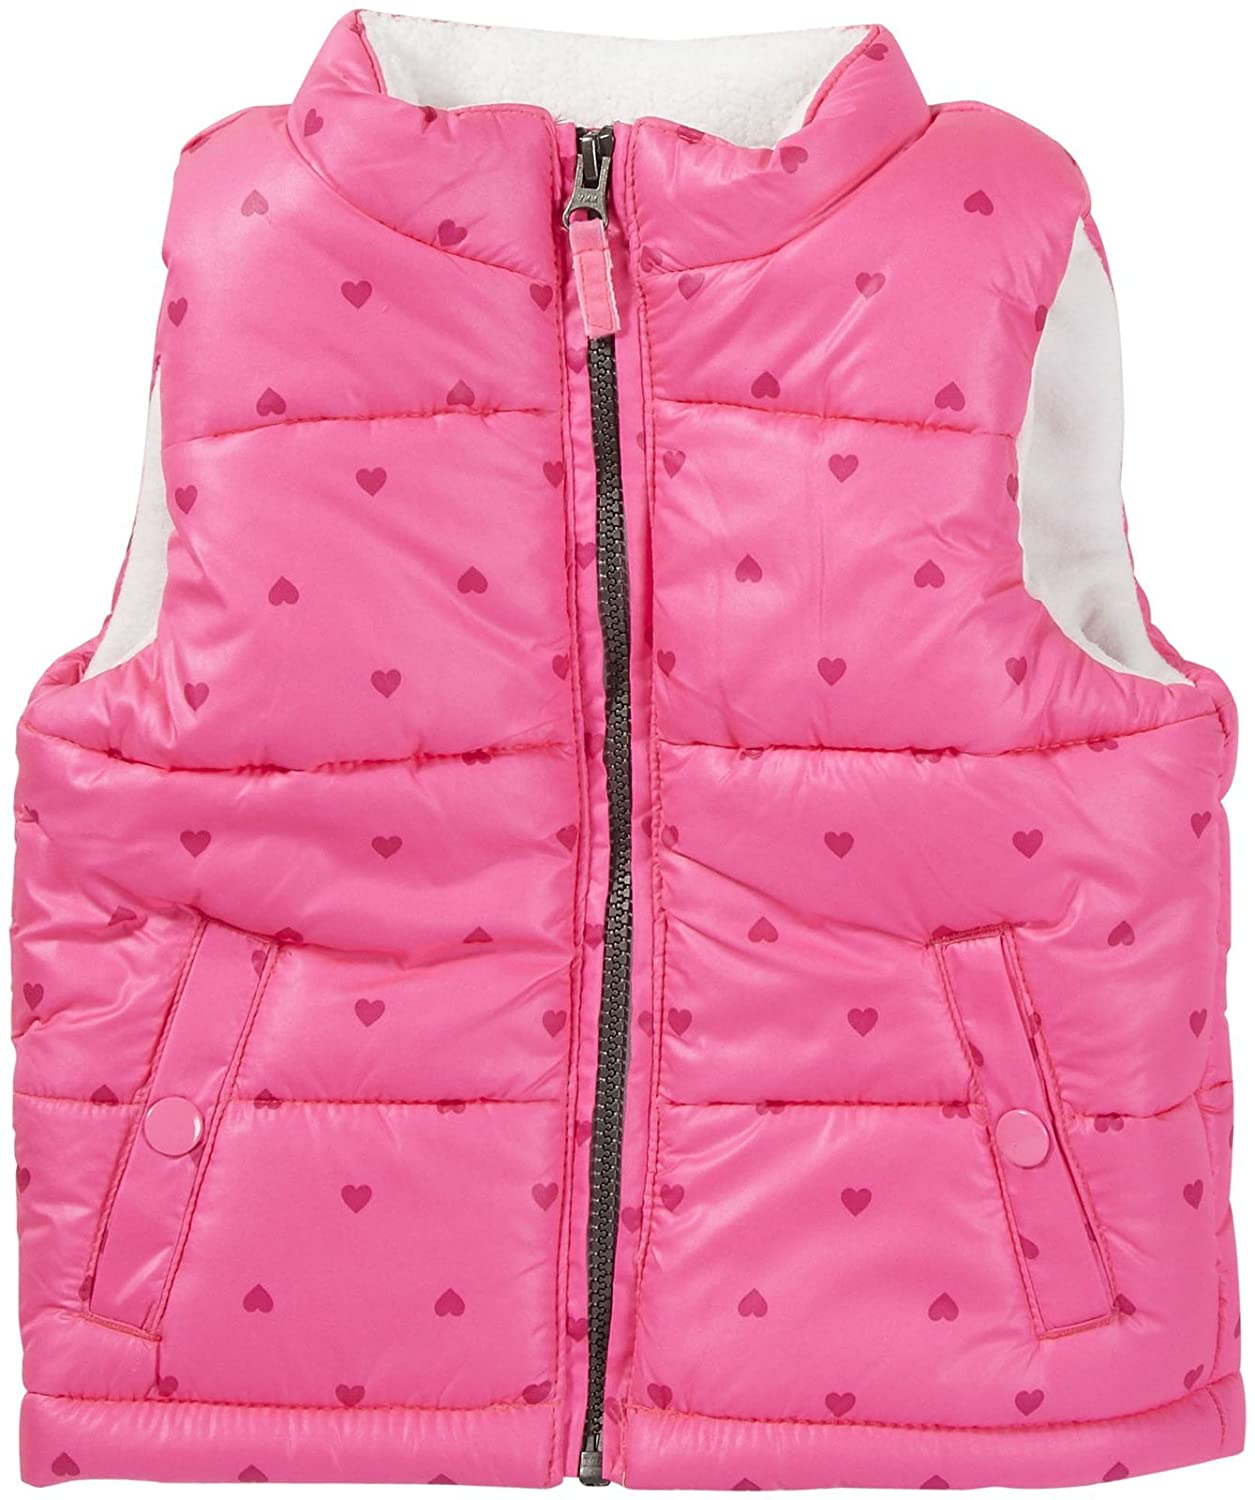 Carter's Quilted Vest - Pink- 4 Carters